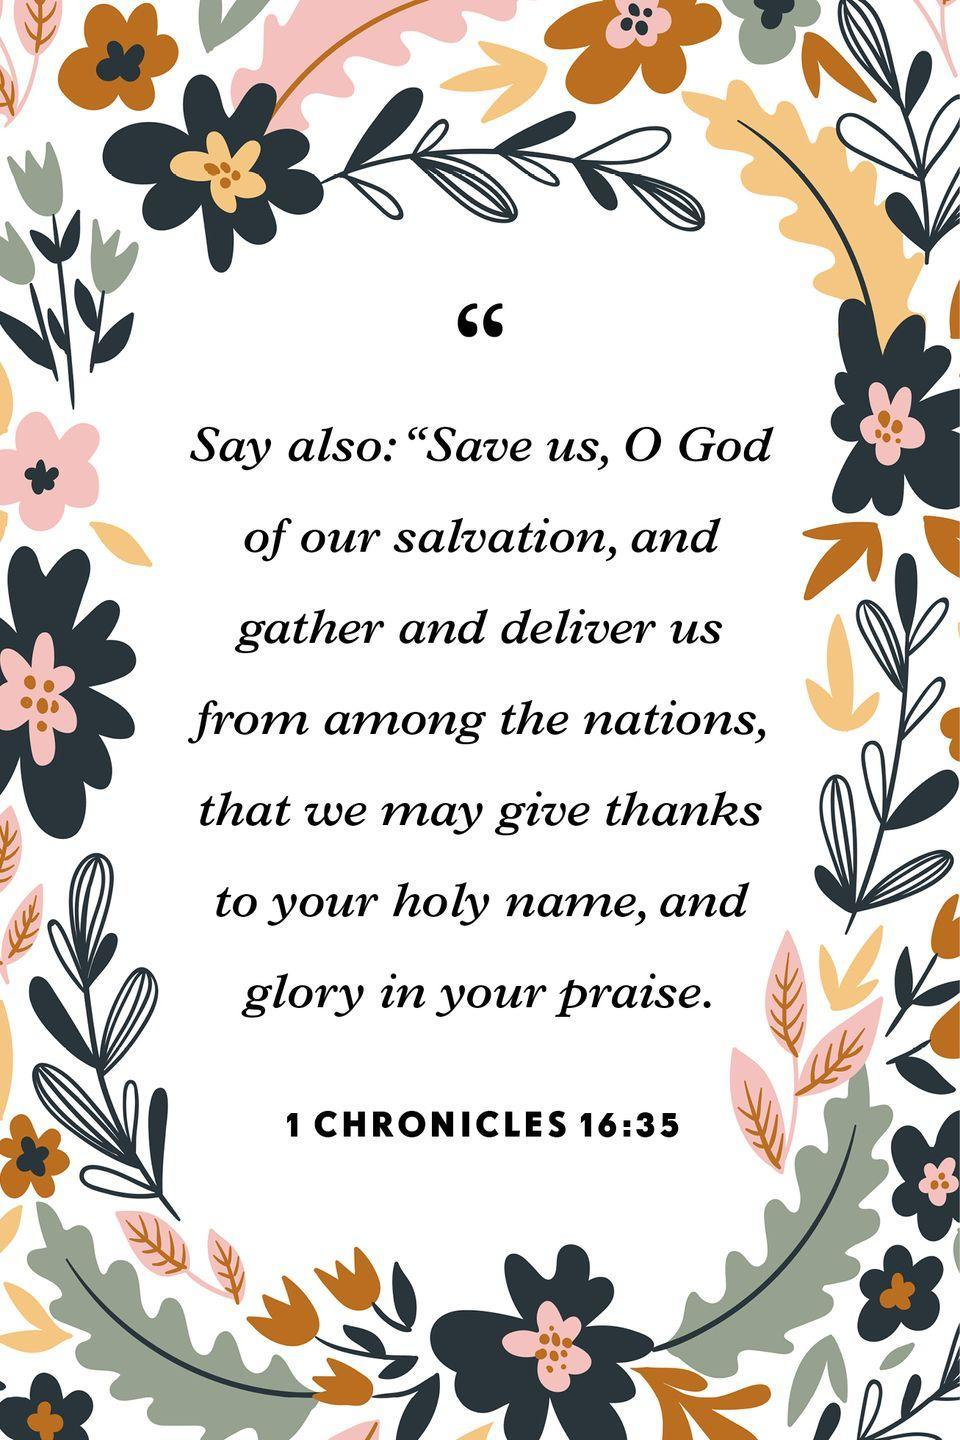 """<p>""""Say also: """"Save us, O God of our salvation,<br>and gather and deliver us from among the nations,<br>that we may give thanks to your holy name,<br>and glory in your praise.""""</p>"""